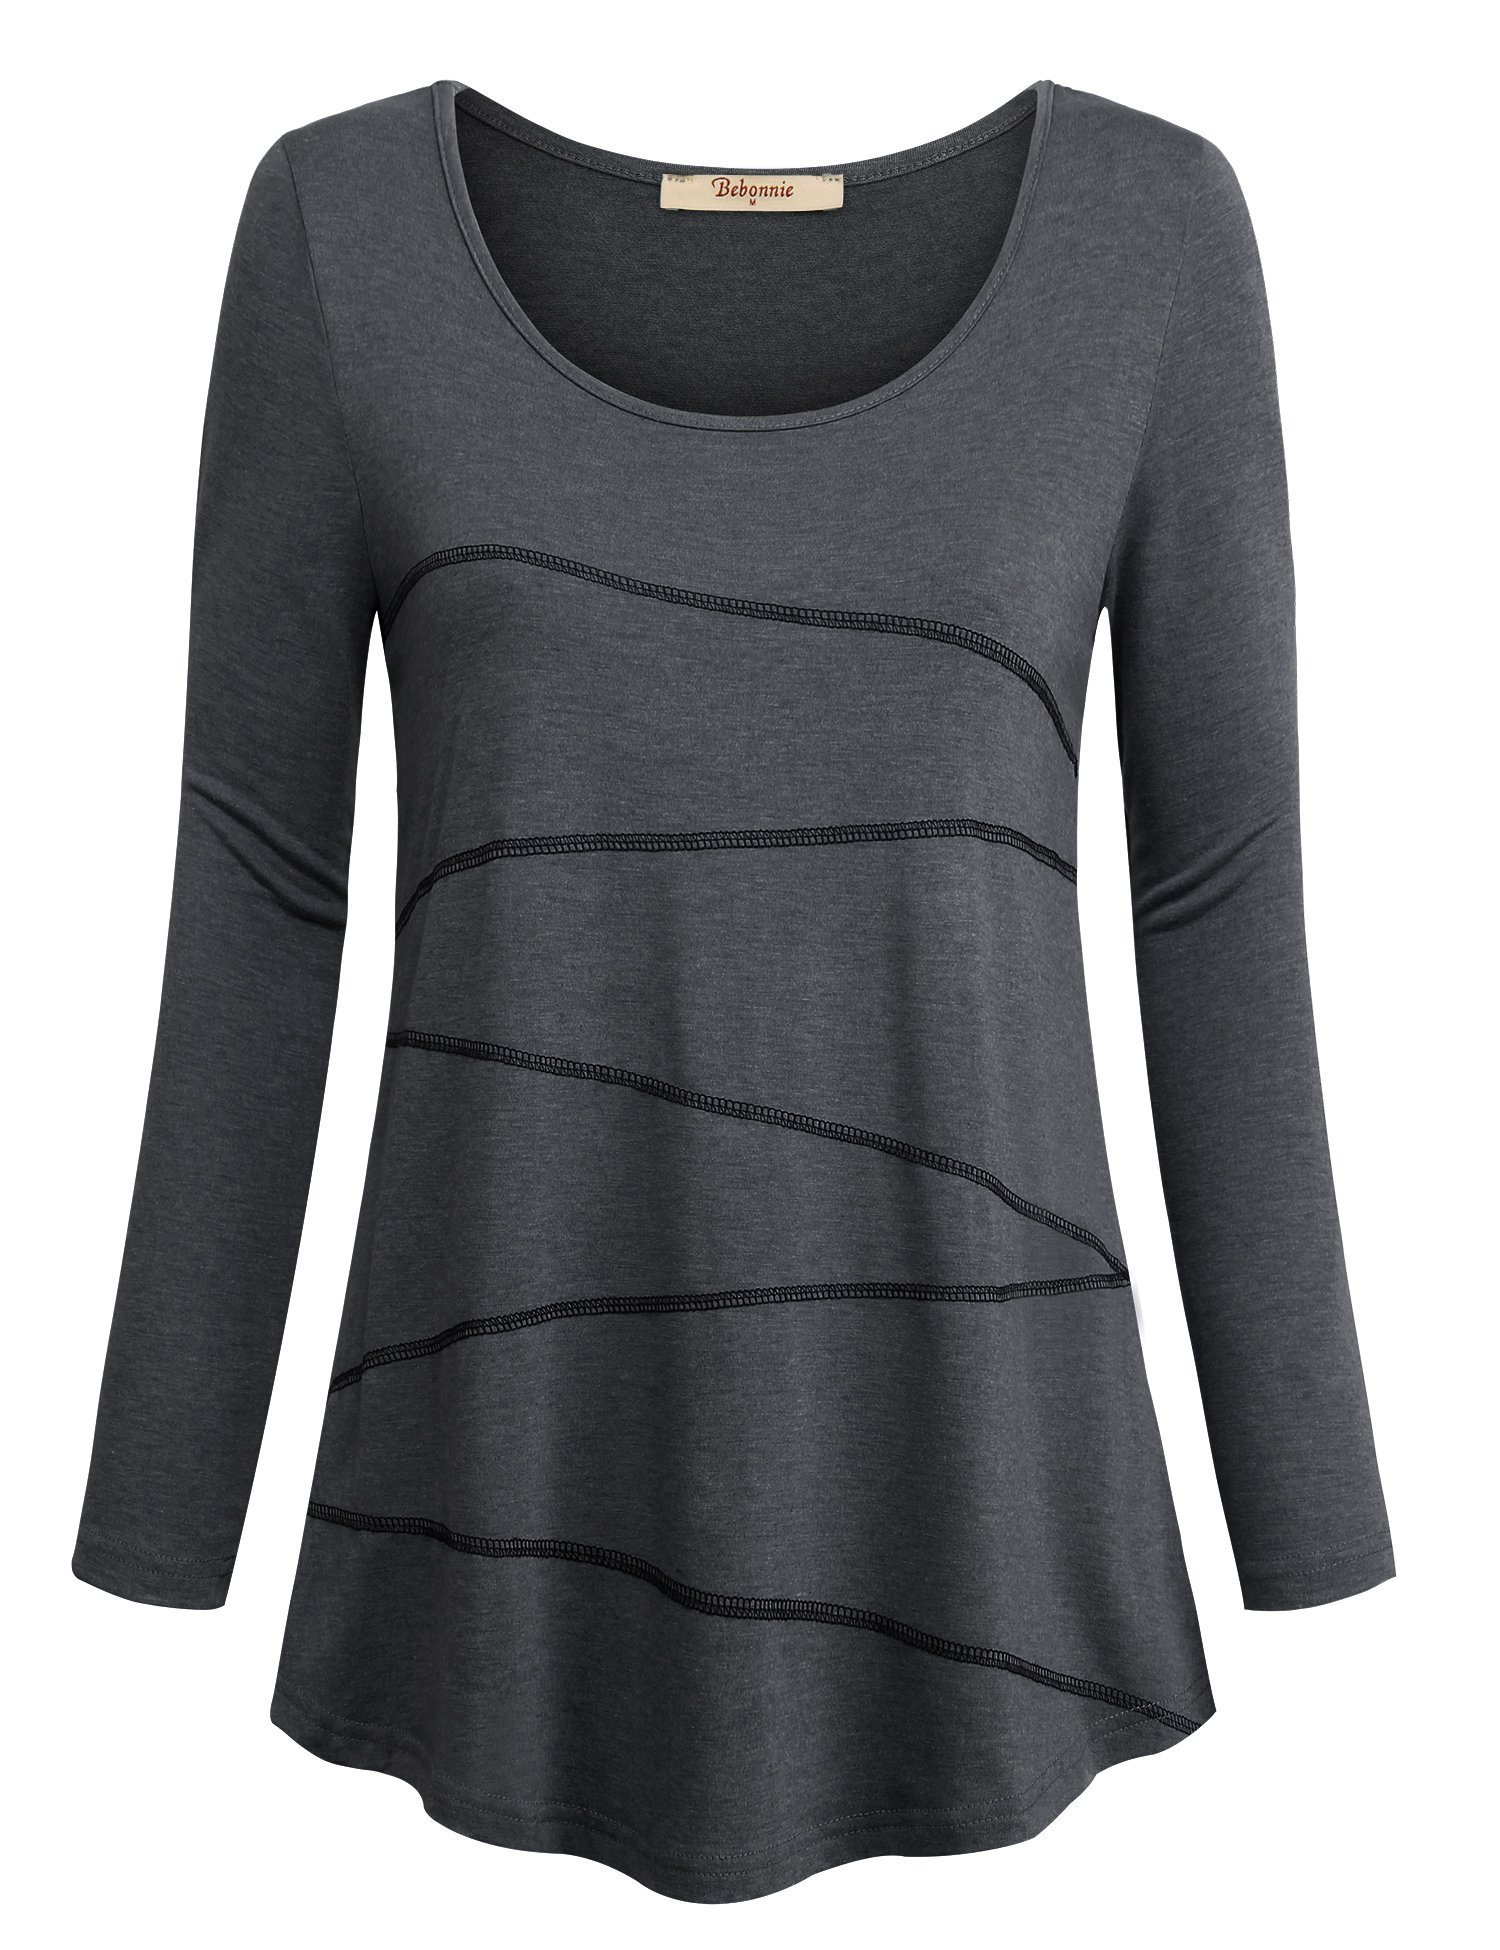 Hong Technology Workout Clothes for Women, Casual Top Stylish Scoop Neck Flare Hem Soft Cozy Business Casual Clothes Daily Wear Black Medium